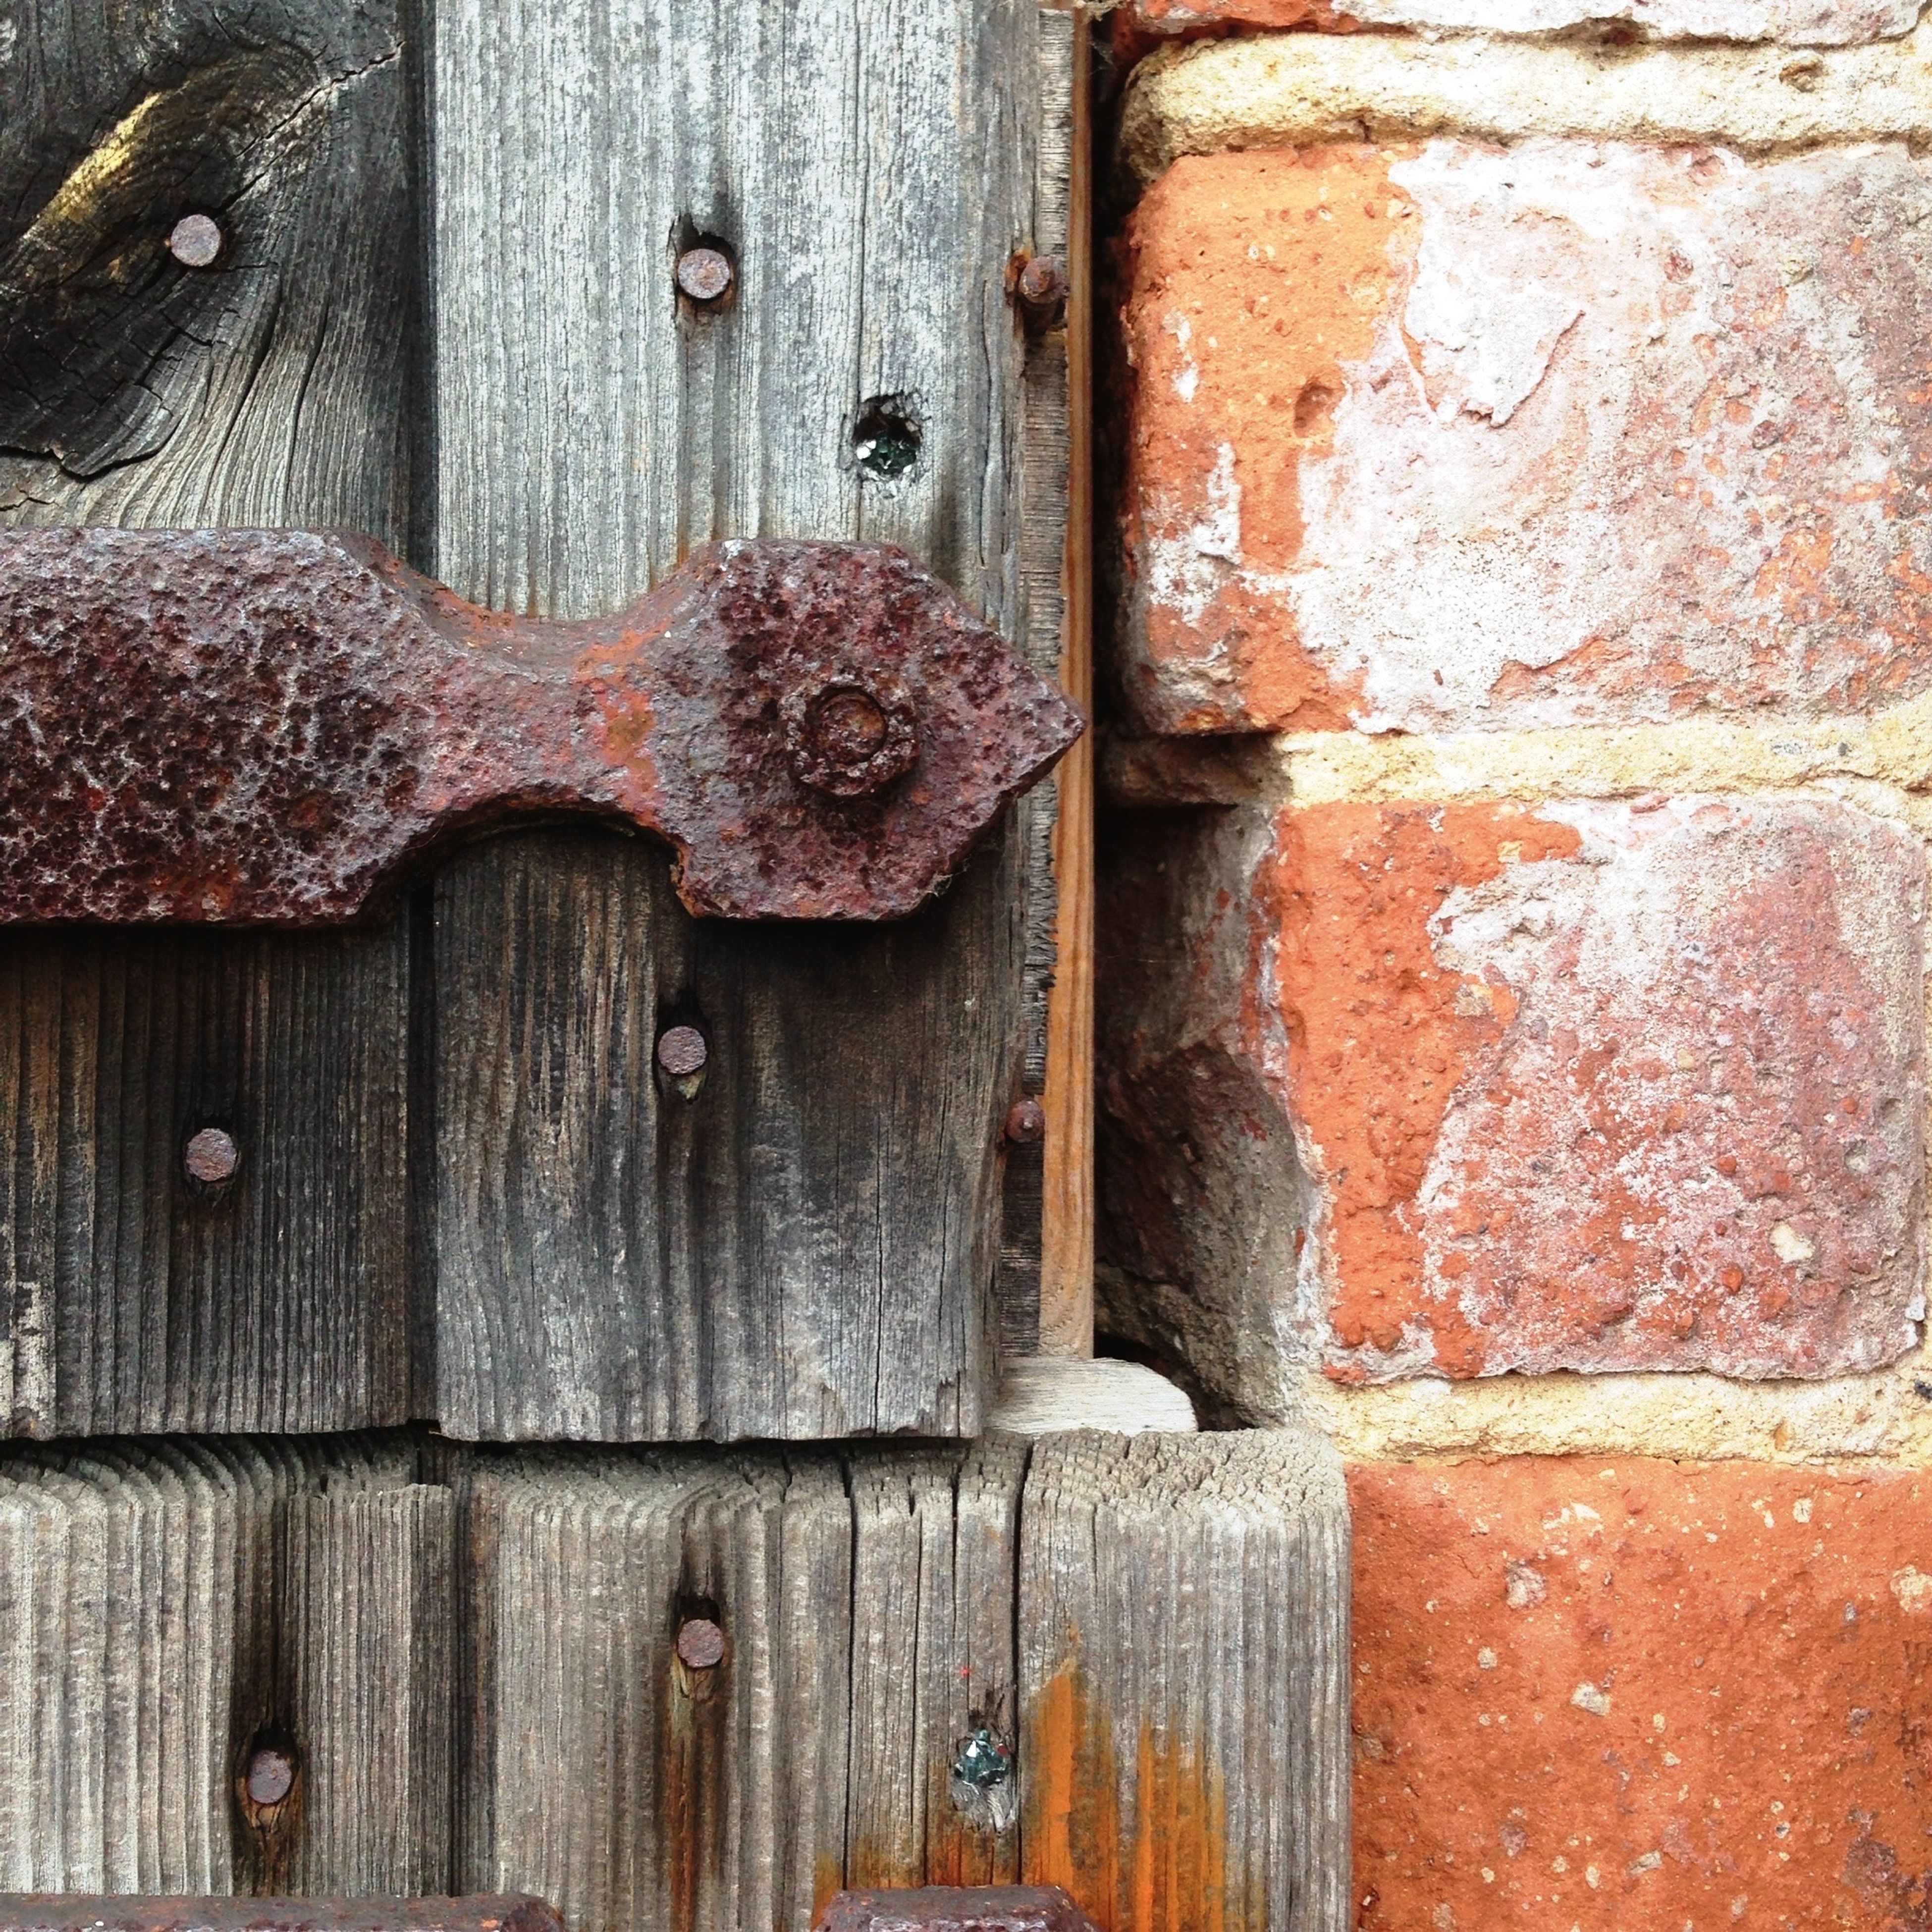 full frame, backgrounds, close-up, wood - material, old, weathered, textured, wooden, protection, closed, security, safety, wood, outdoors, day, no people, deterioration, detail, part of, brown